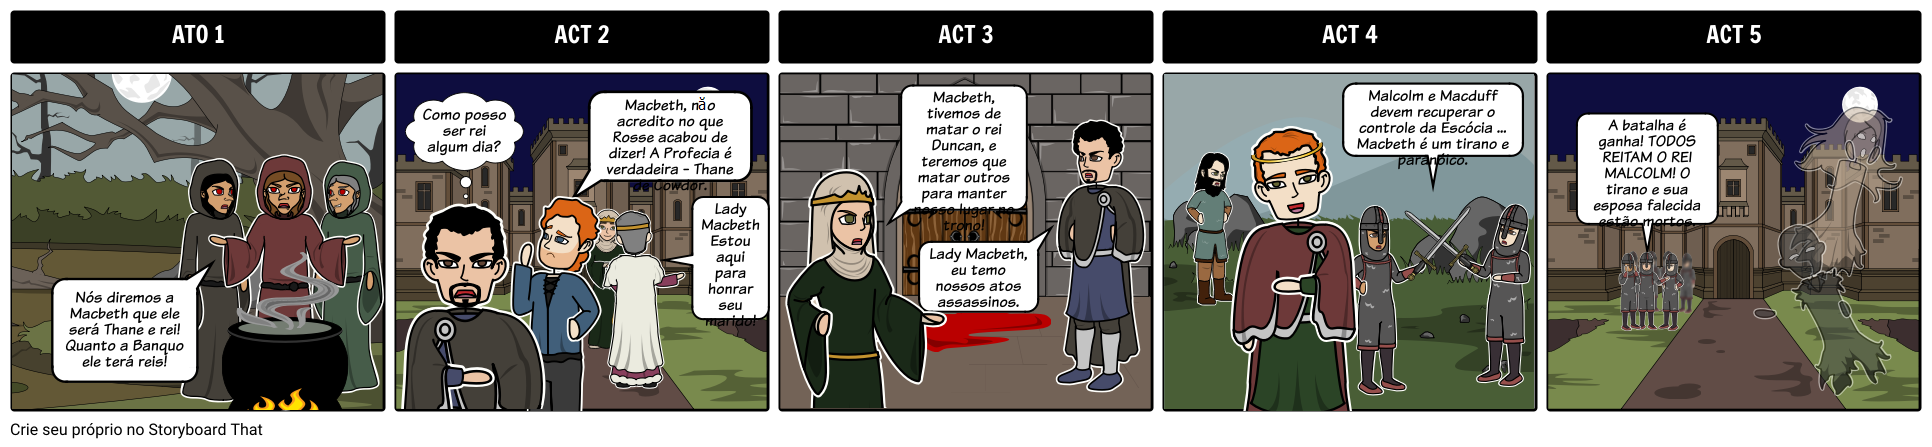 Macbeth 5 Act Estrutura Storyboard